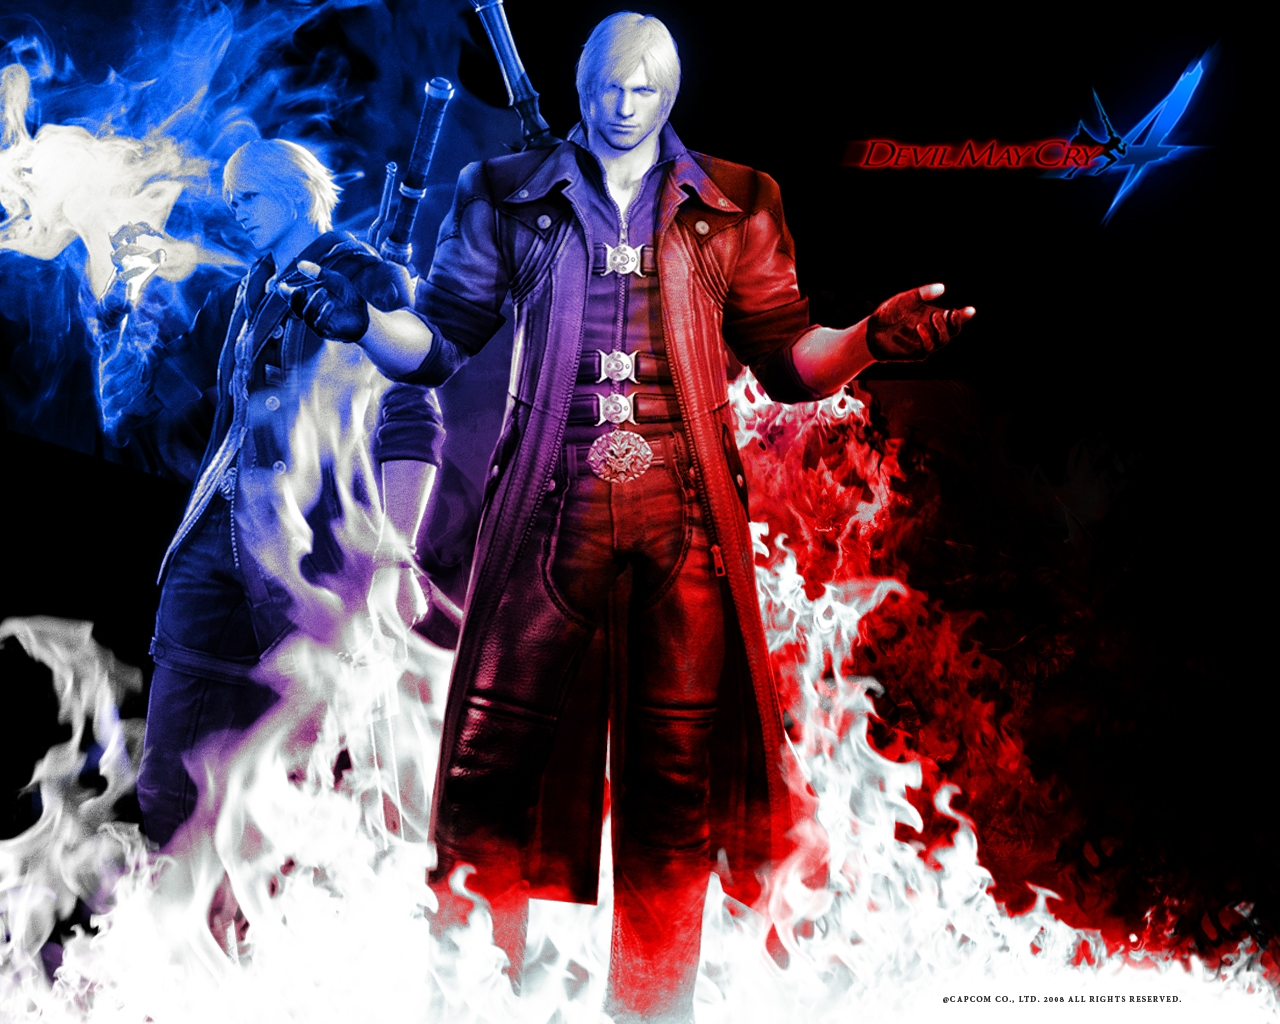 Background image vs img - Devil May Cry 4 Dmc4 Wallpaper Background Capcom Img Image Pic Picture